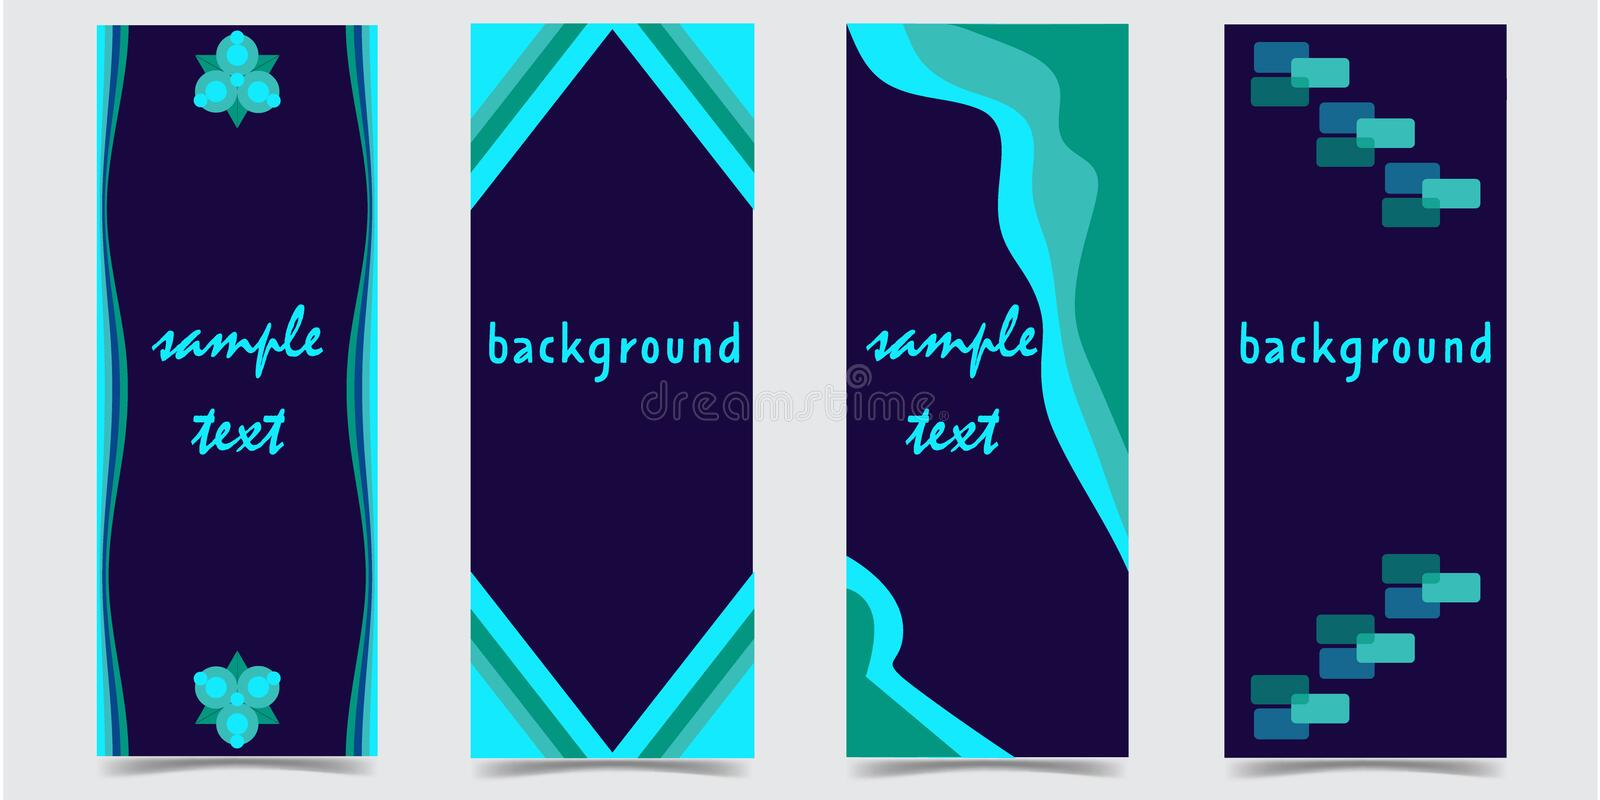 Set of covers with abstract green shapes on dark blue background vector illustration